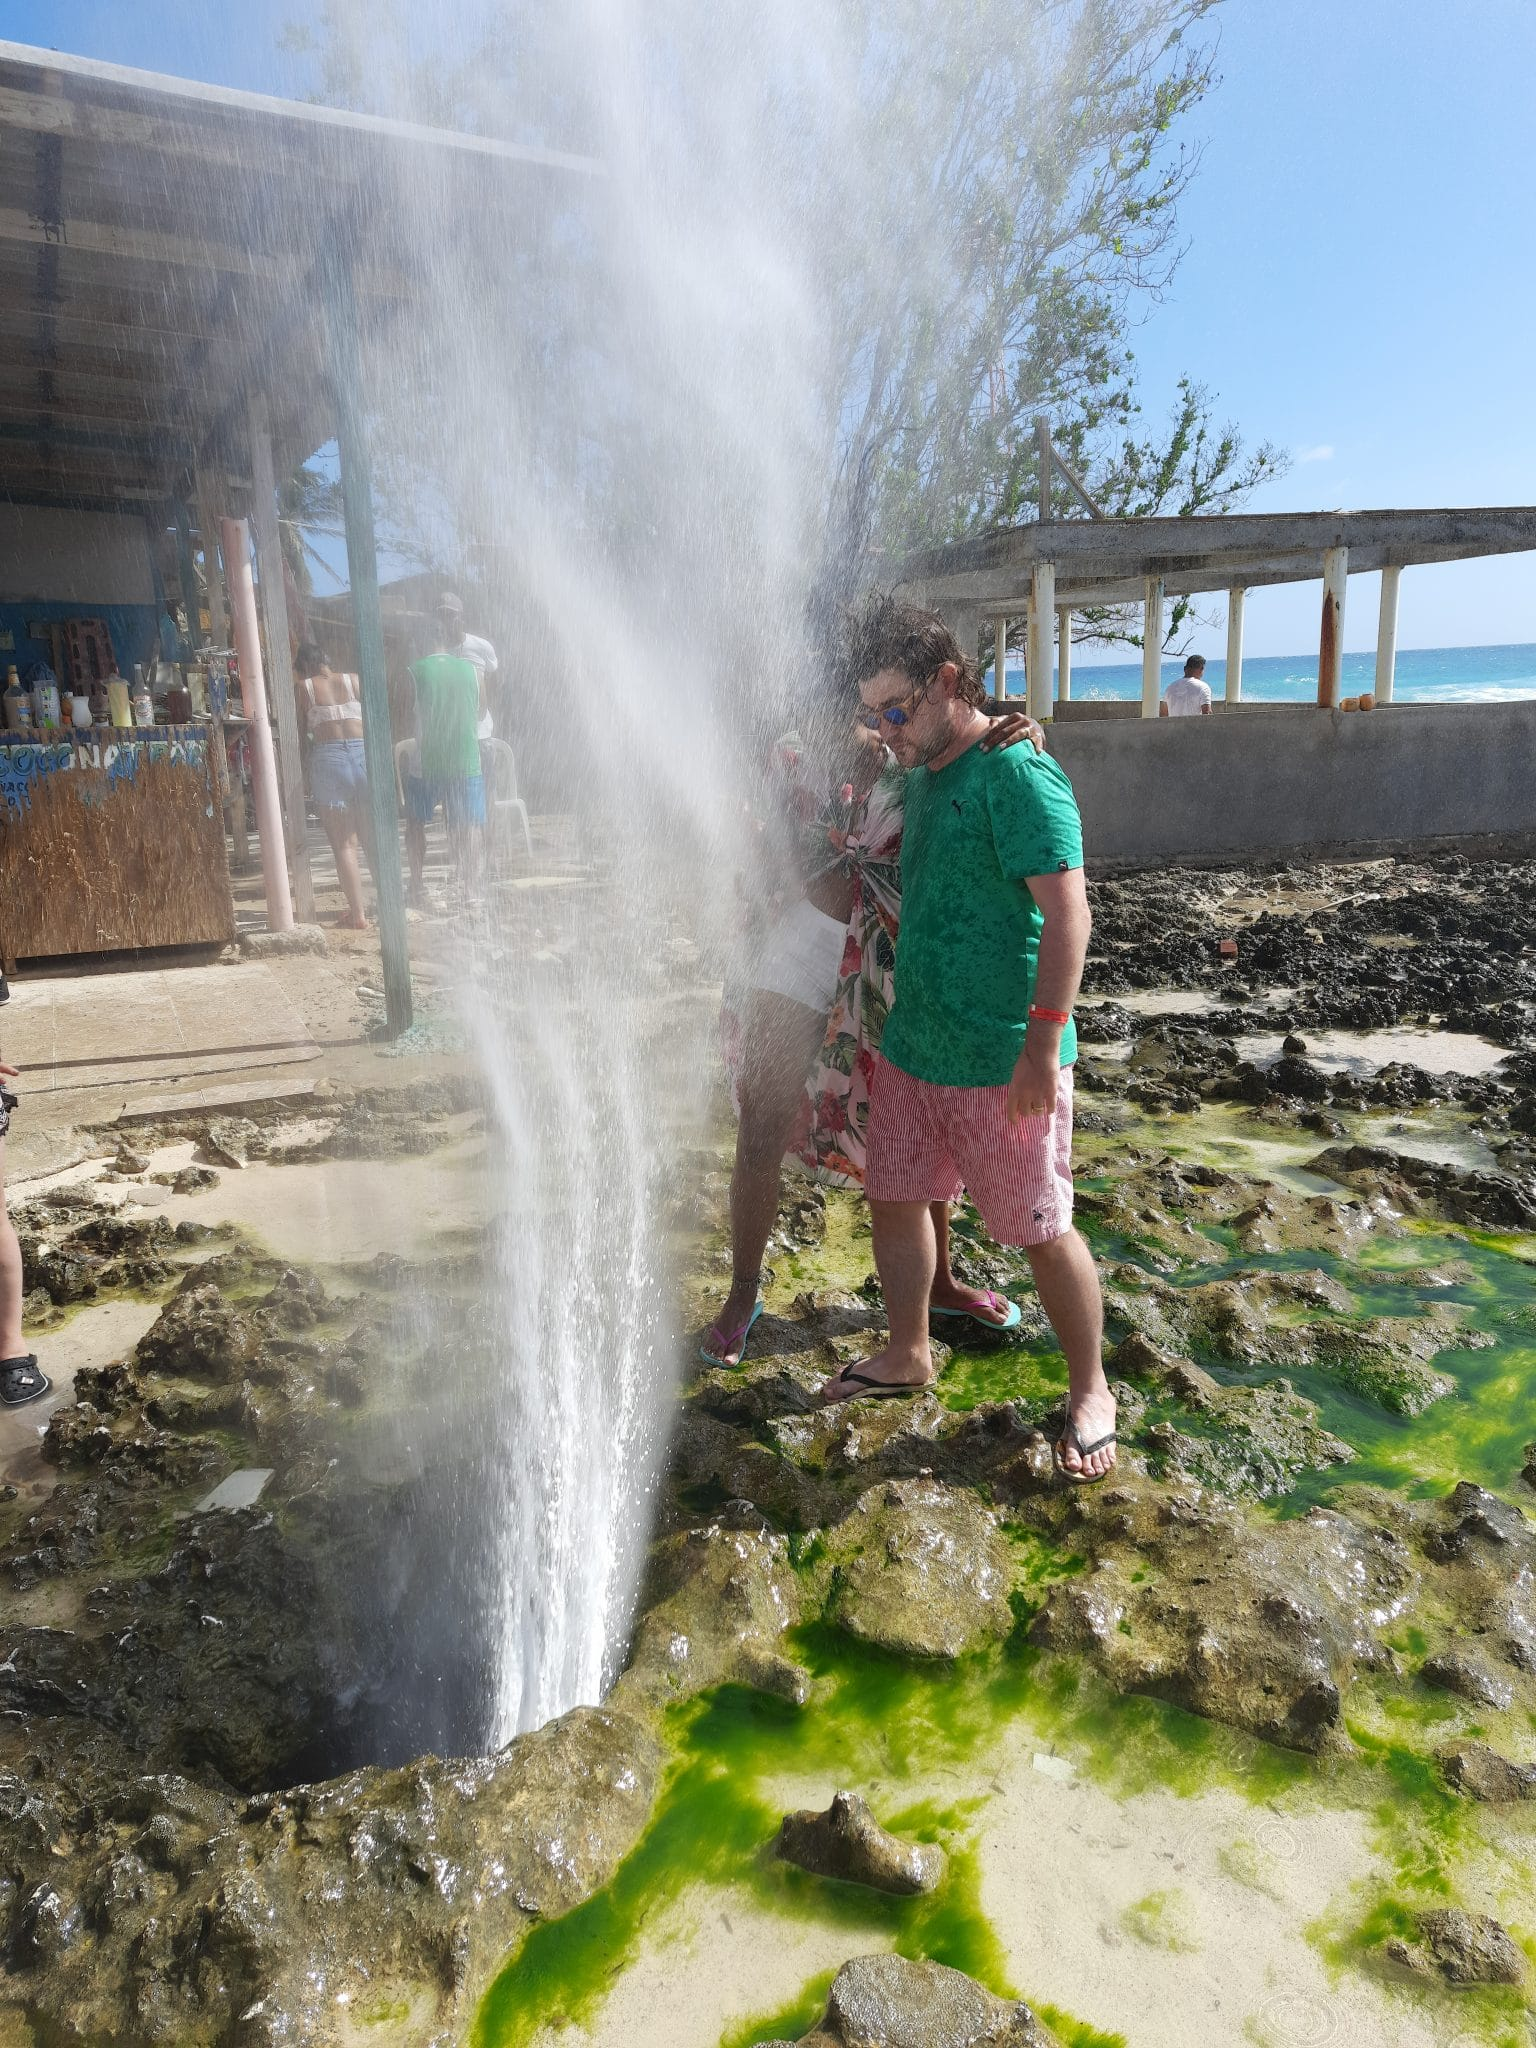 Practical Guide to the Hoyo Soplador, San Andres Blowhole